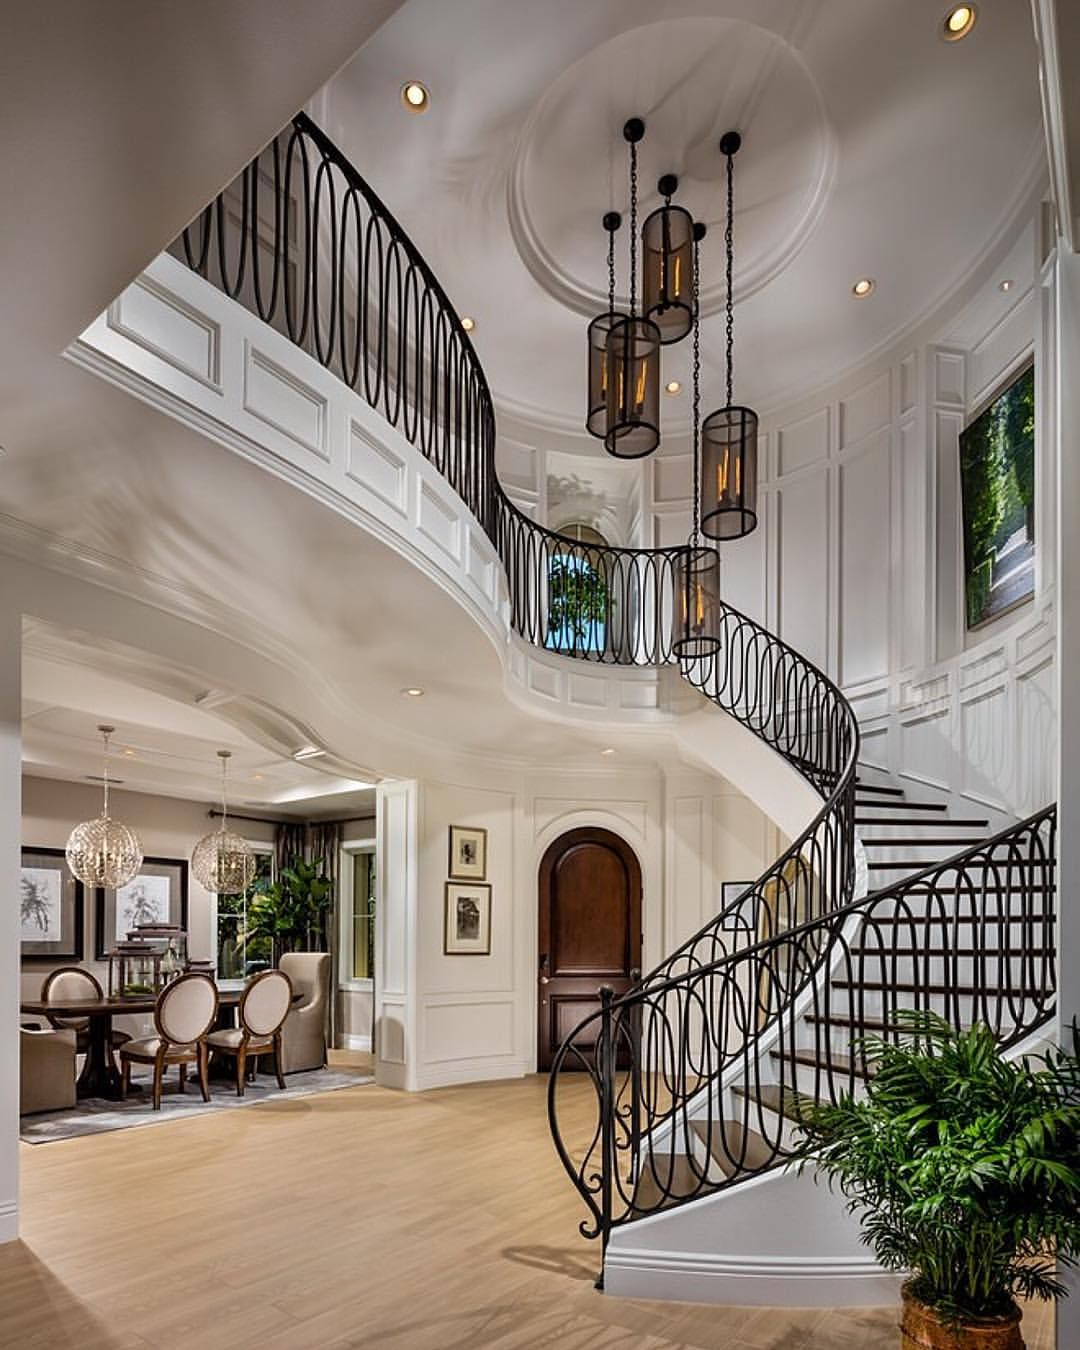 Foyer: Another Spectacular Foyer From Toll Brothers!